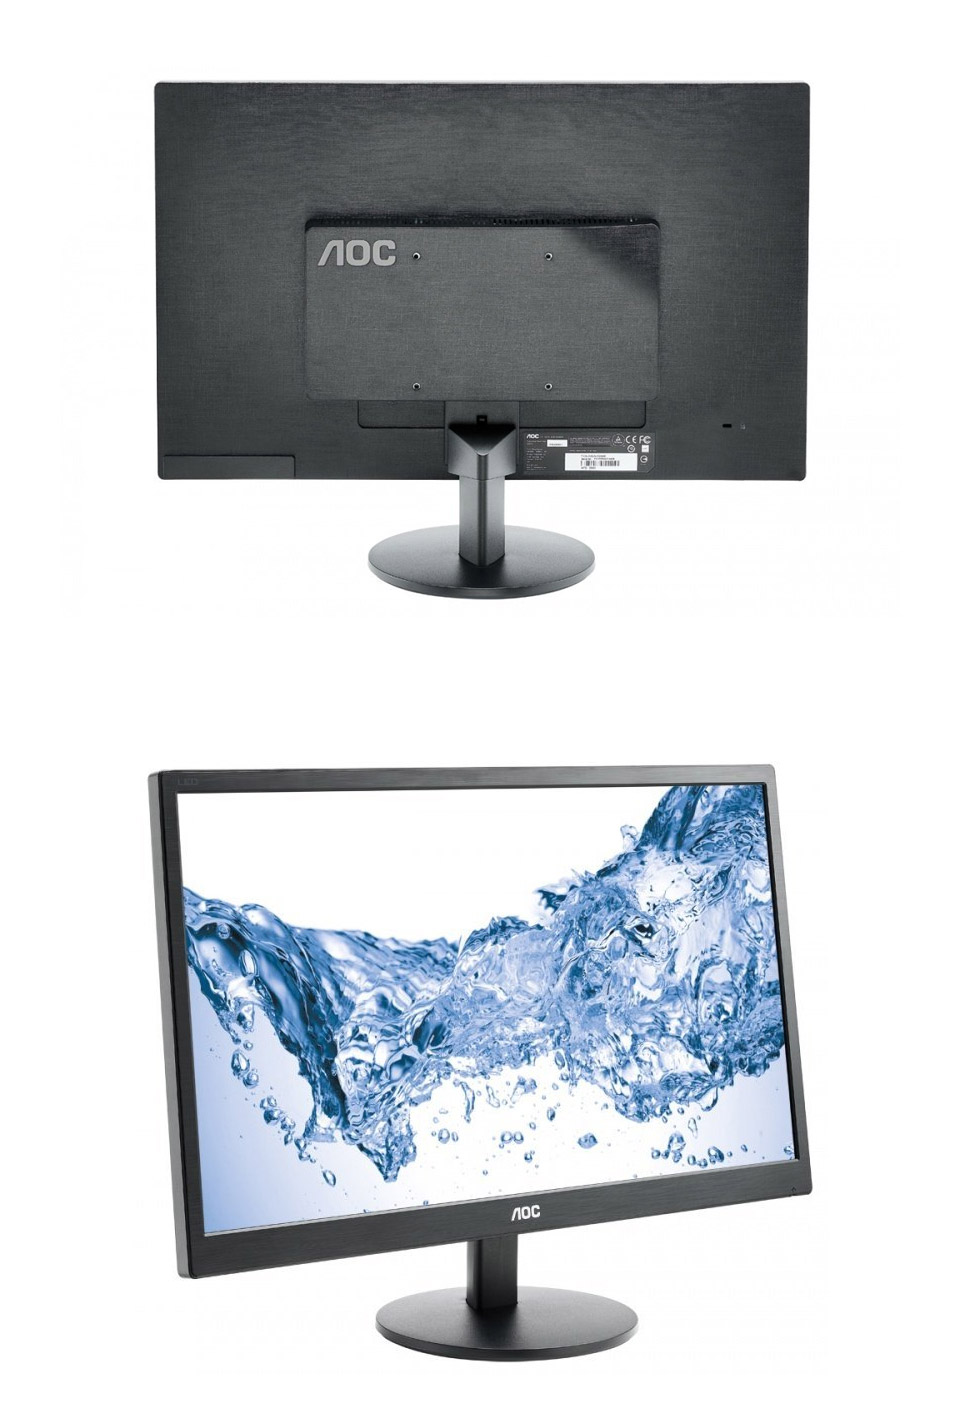 Buy AOC E2470SWH FHD 24in Monitor [E2470SWH] | PC Case Gear Australia